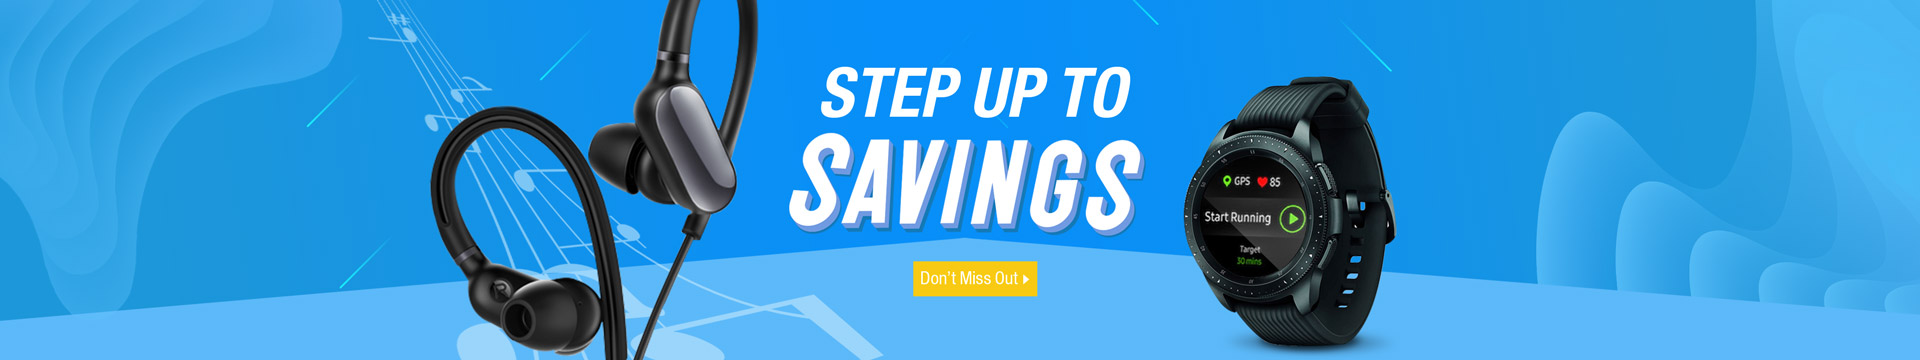 Step Up To Savings